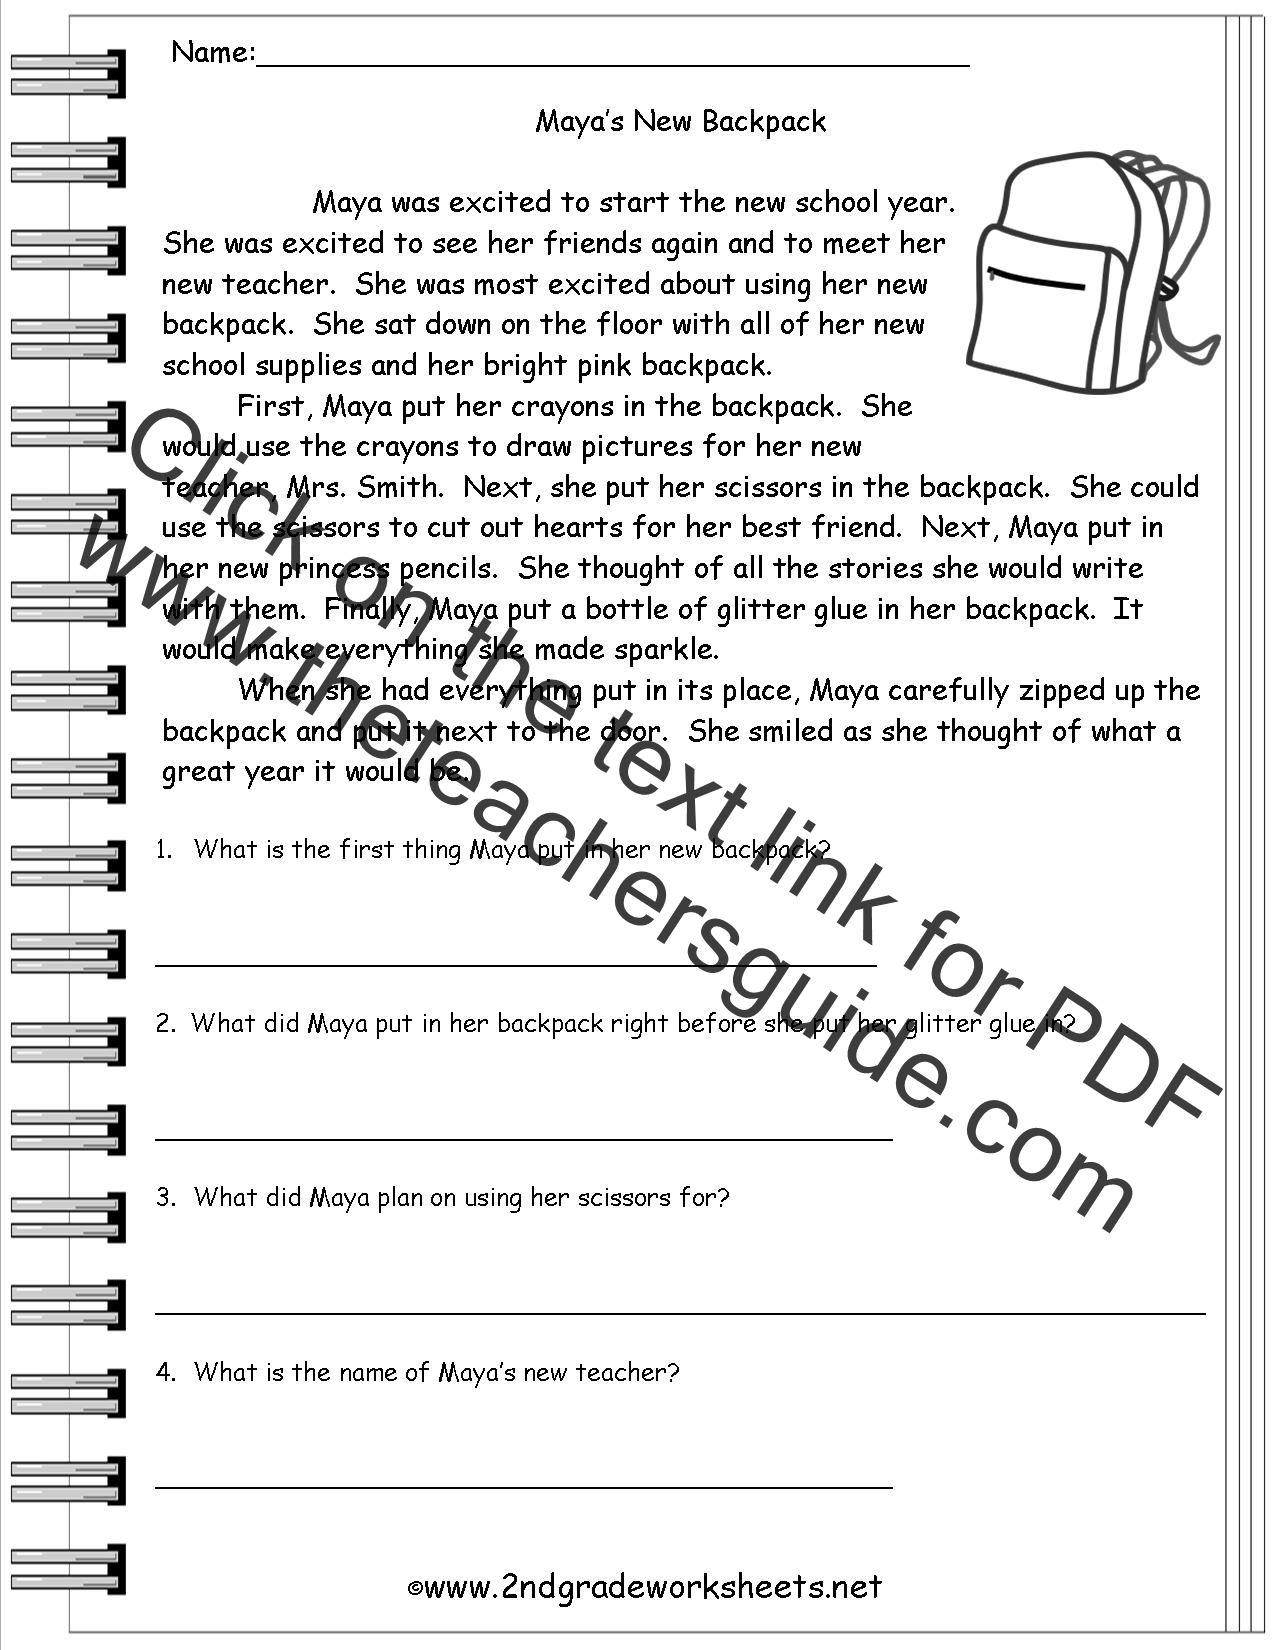 Worksheets Reading Comprehension Worksheets For 4th Grade reading worksheeets literature worksheets